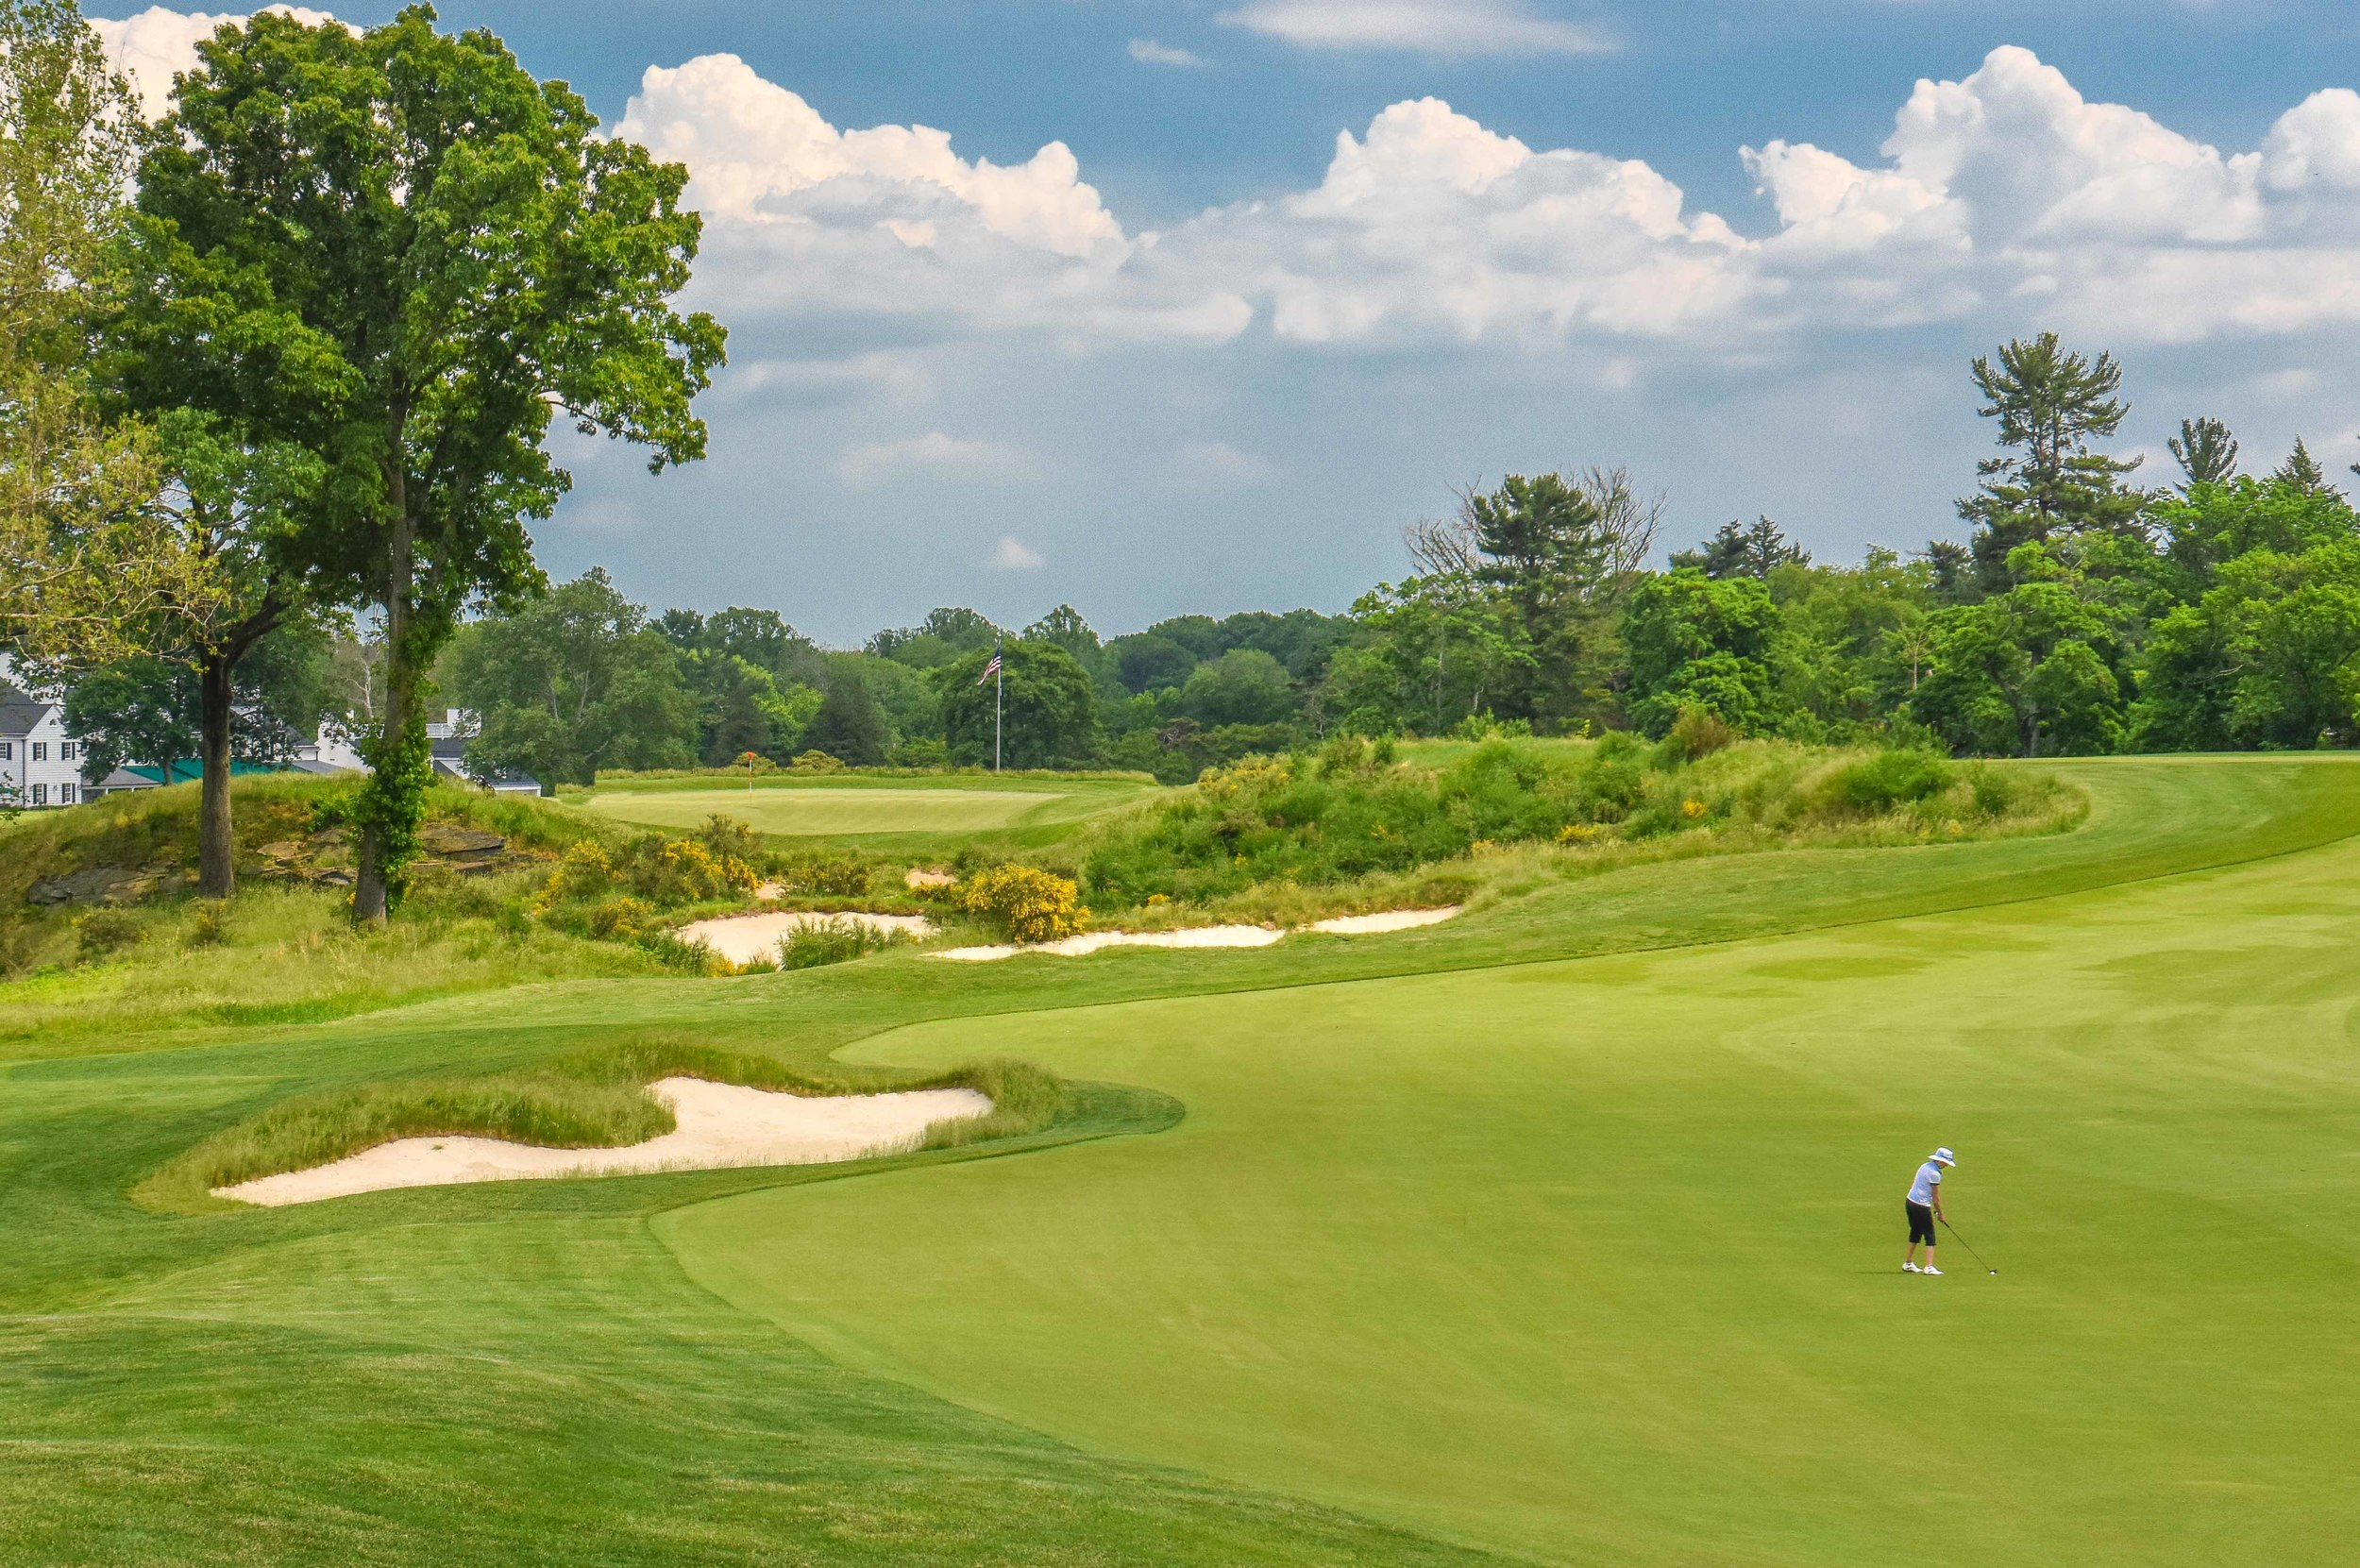 """It was the men vs the women for an all out death match at Merion. Sean and i would succumb to the rough and suffer a devastating defeat in what would later be coined """"The Massacre at Merion"""""""